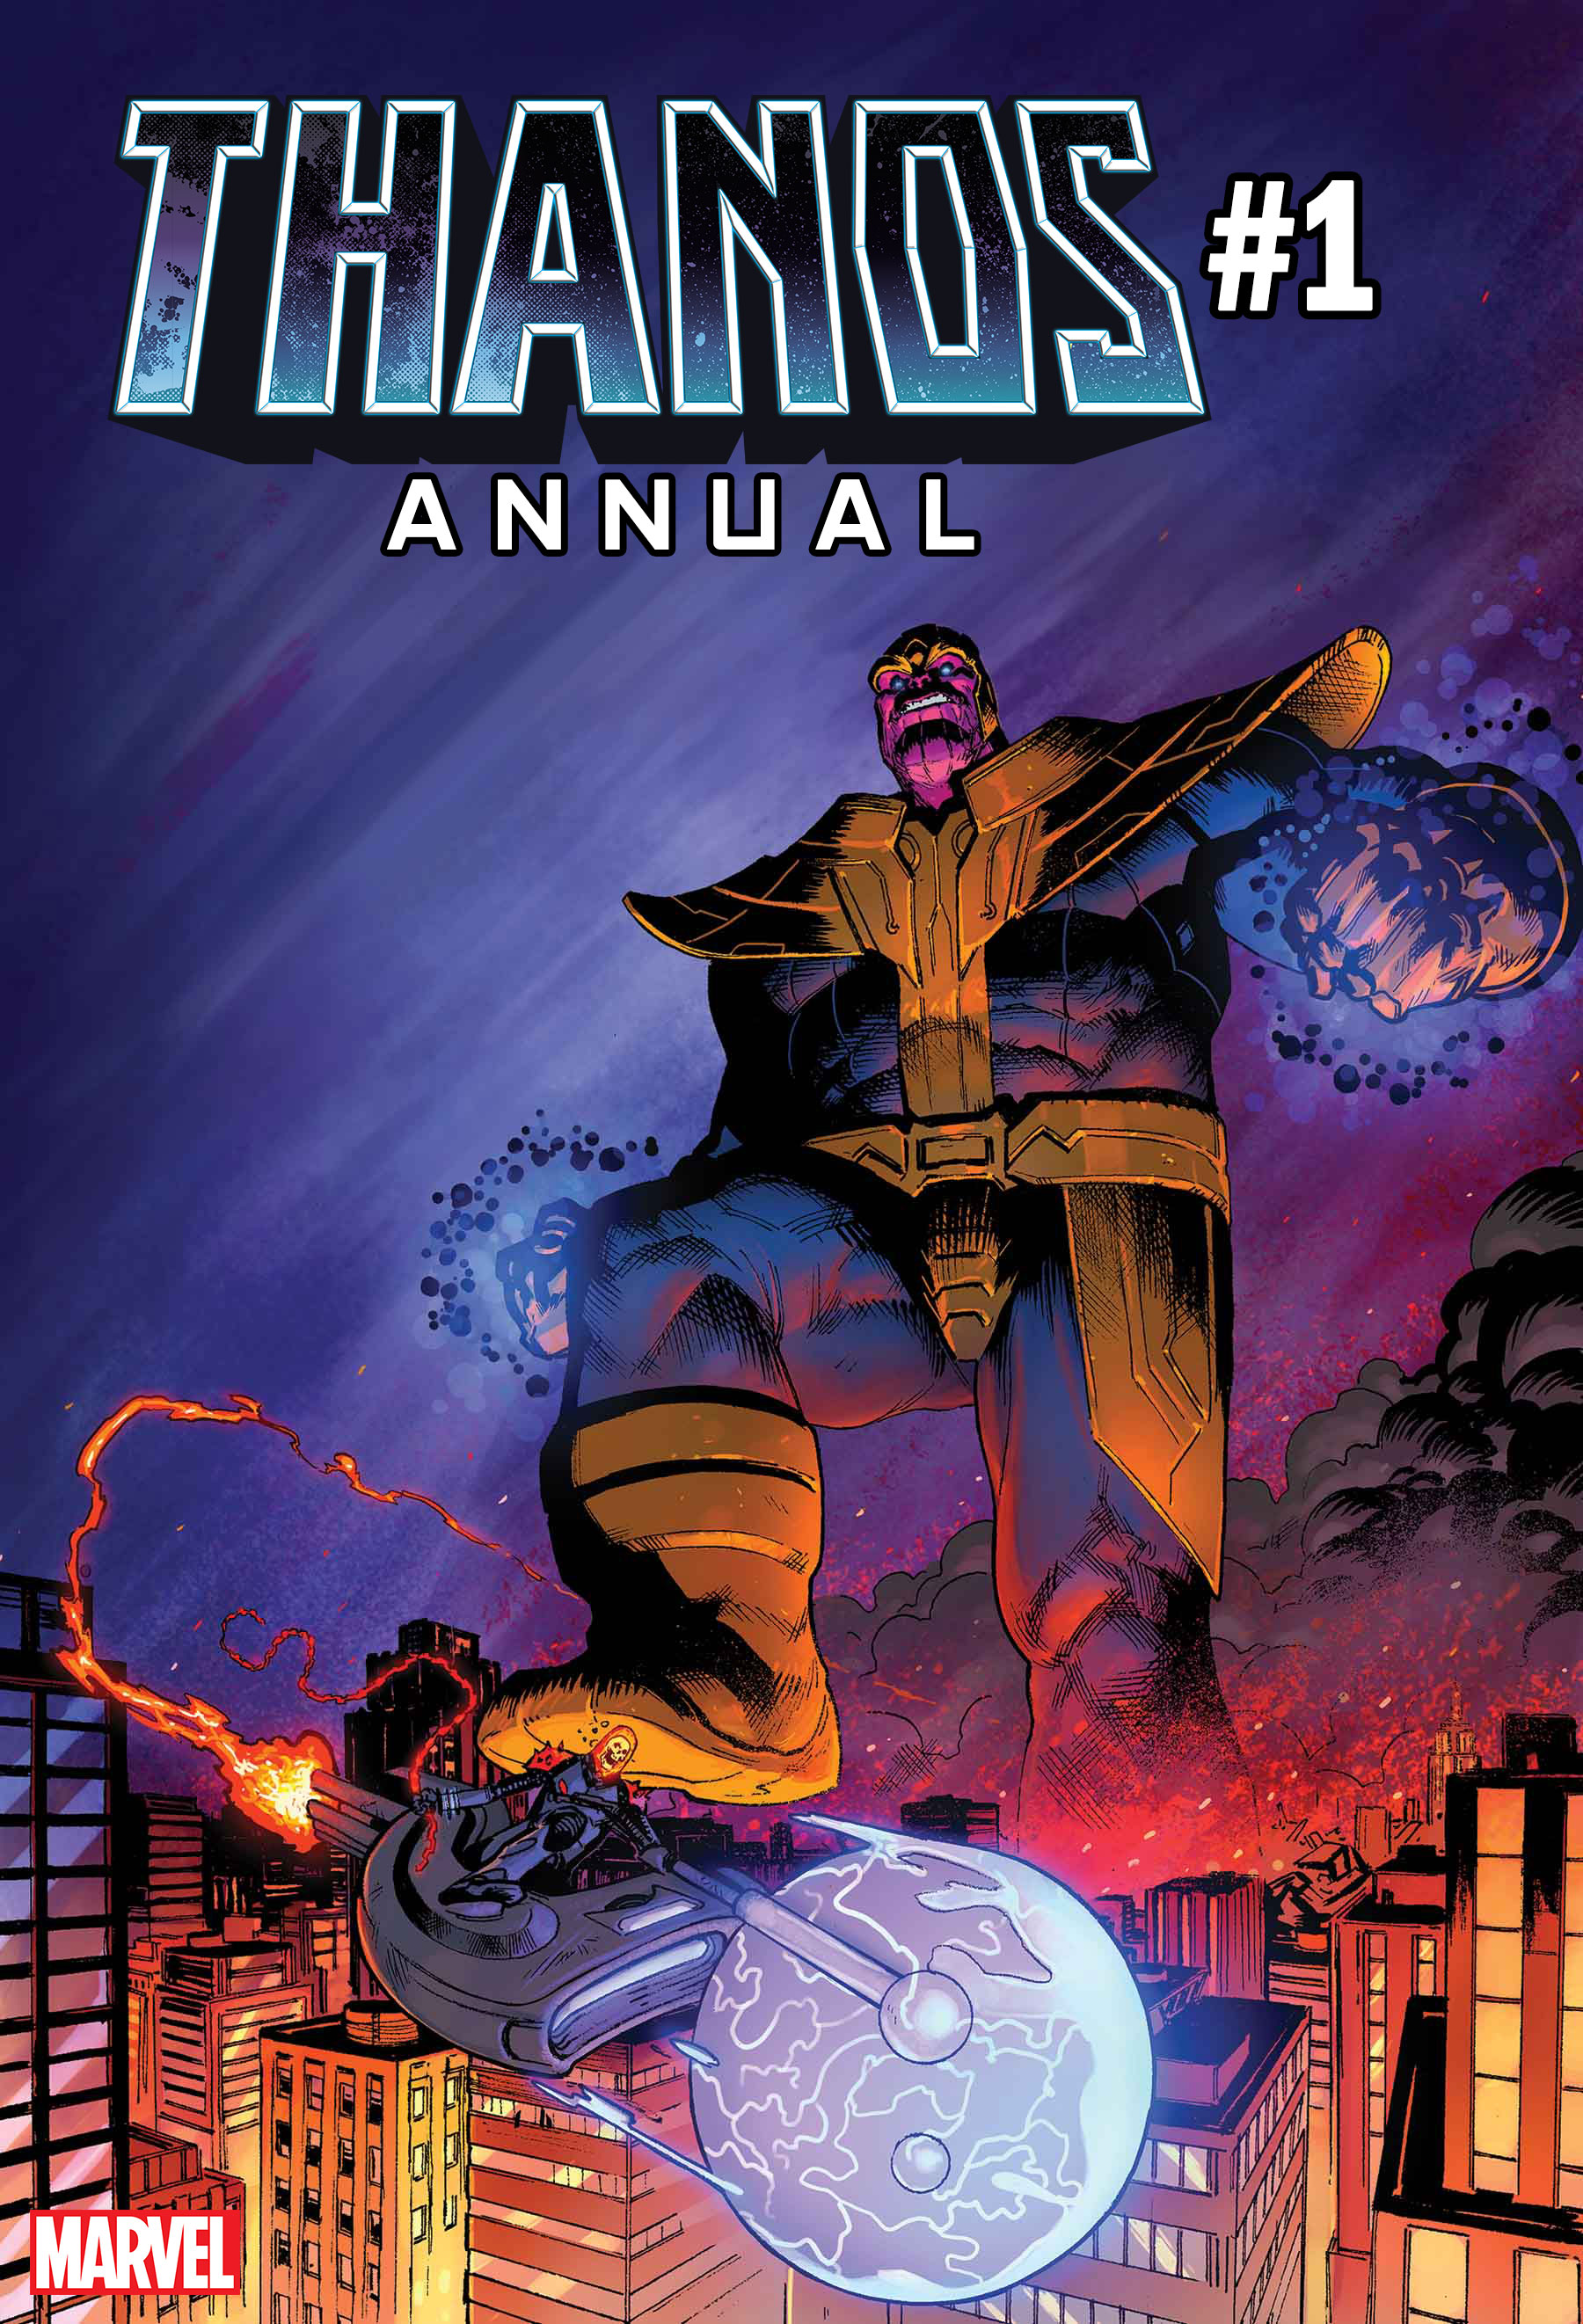 Thanos Annual #1 features the Cosmic Ghost Rider